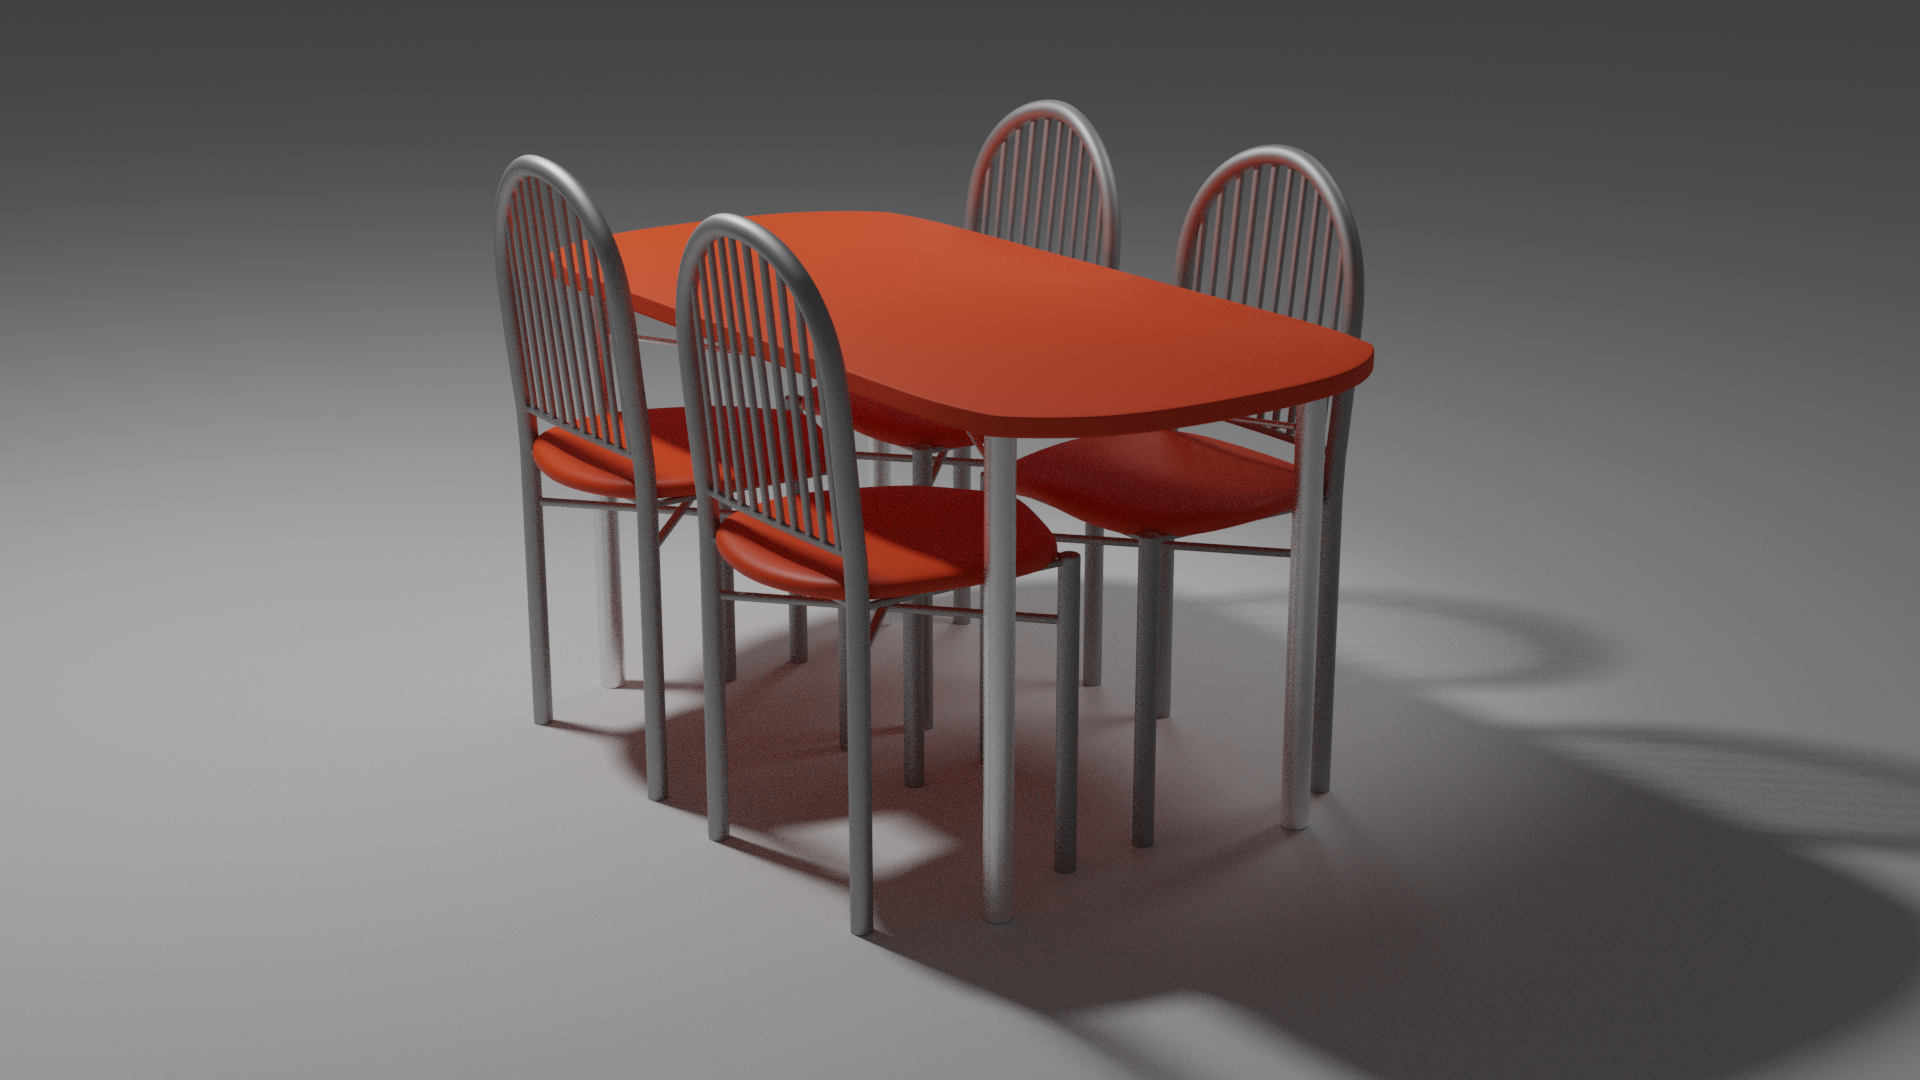 Dining table and chairs preview image 1